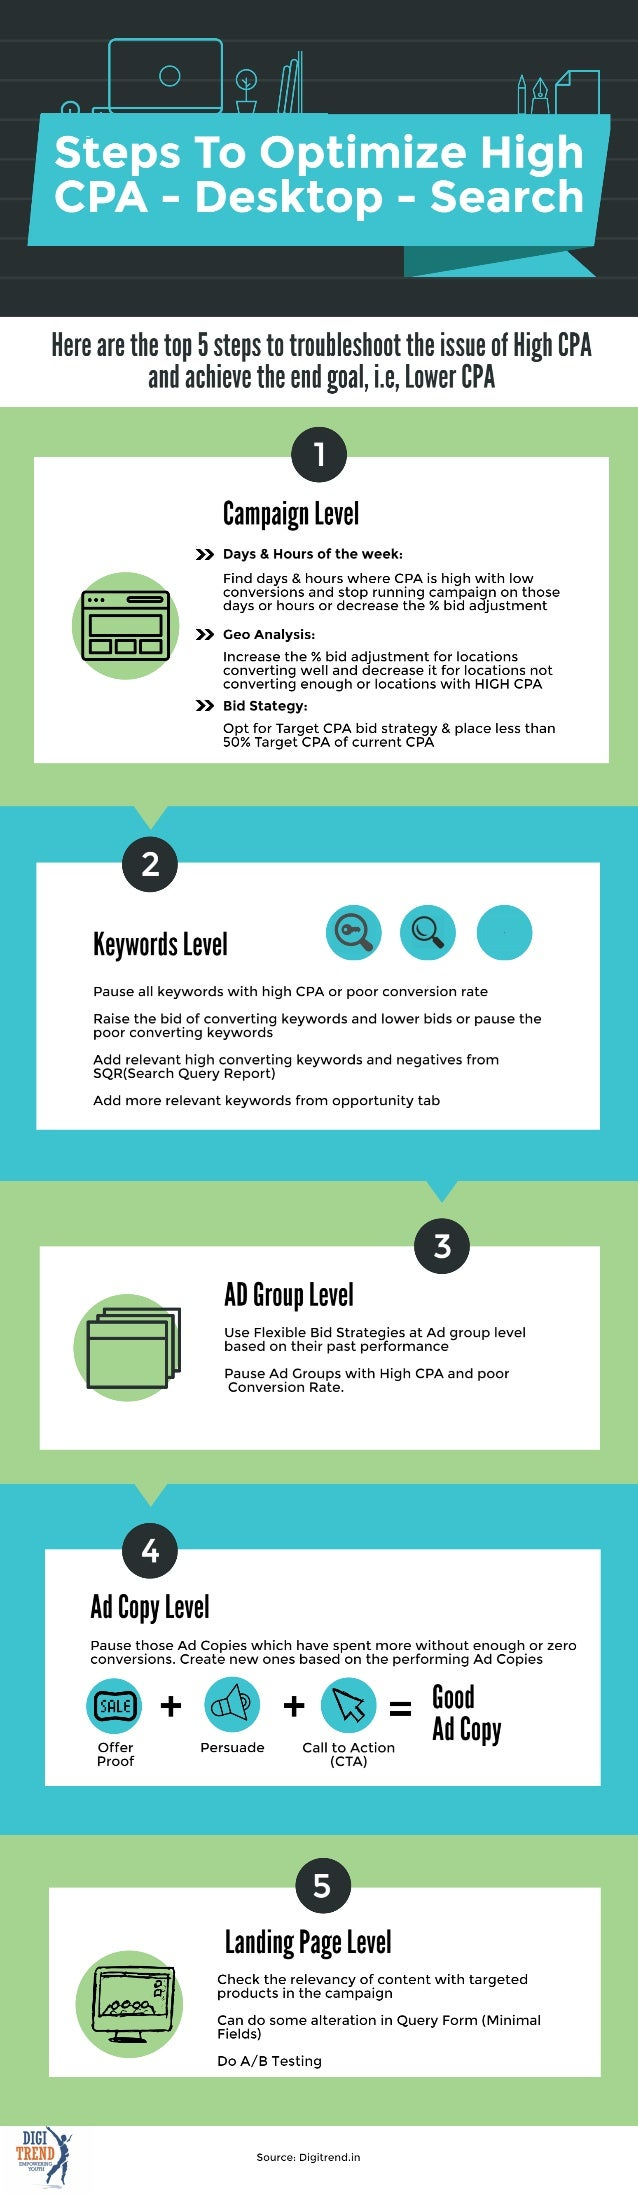 Google Adwords Infographic- How to optimize High Cost-per-acquisition (CPA) in Search Network of Google Adwords